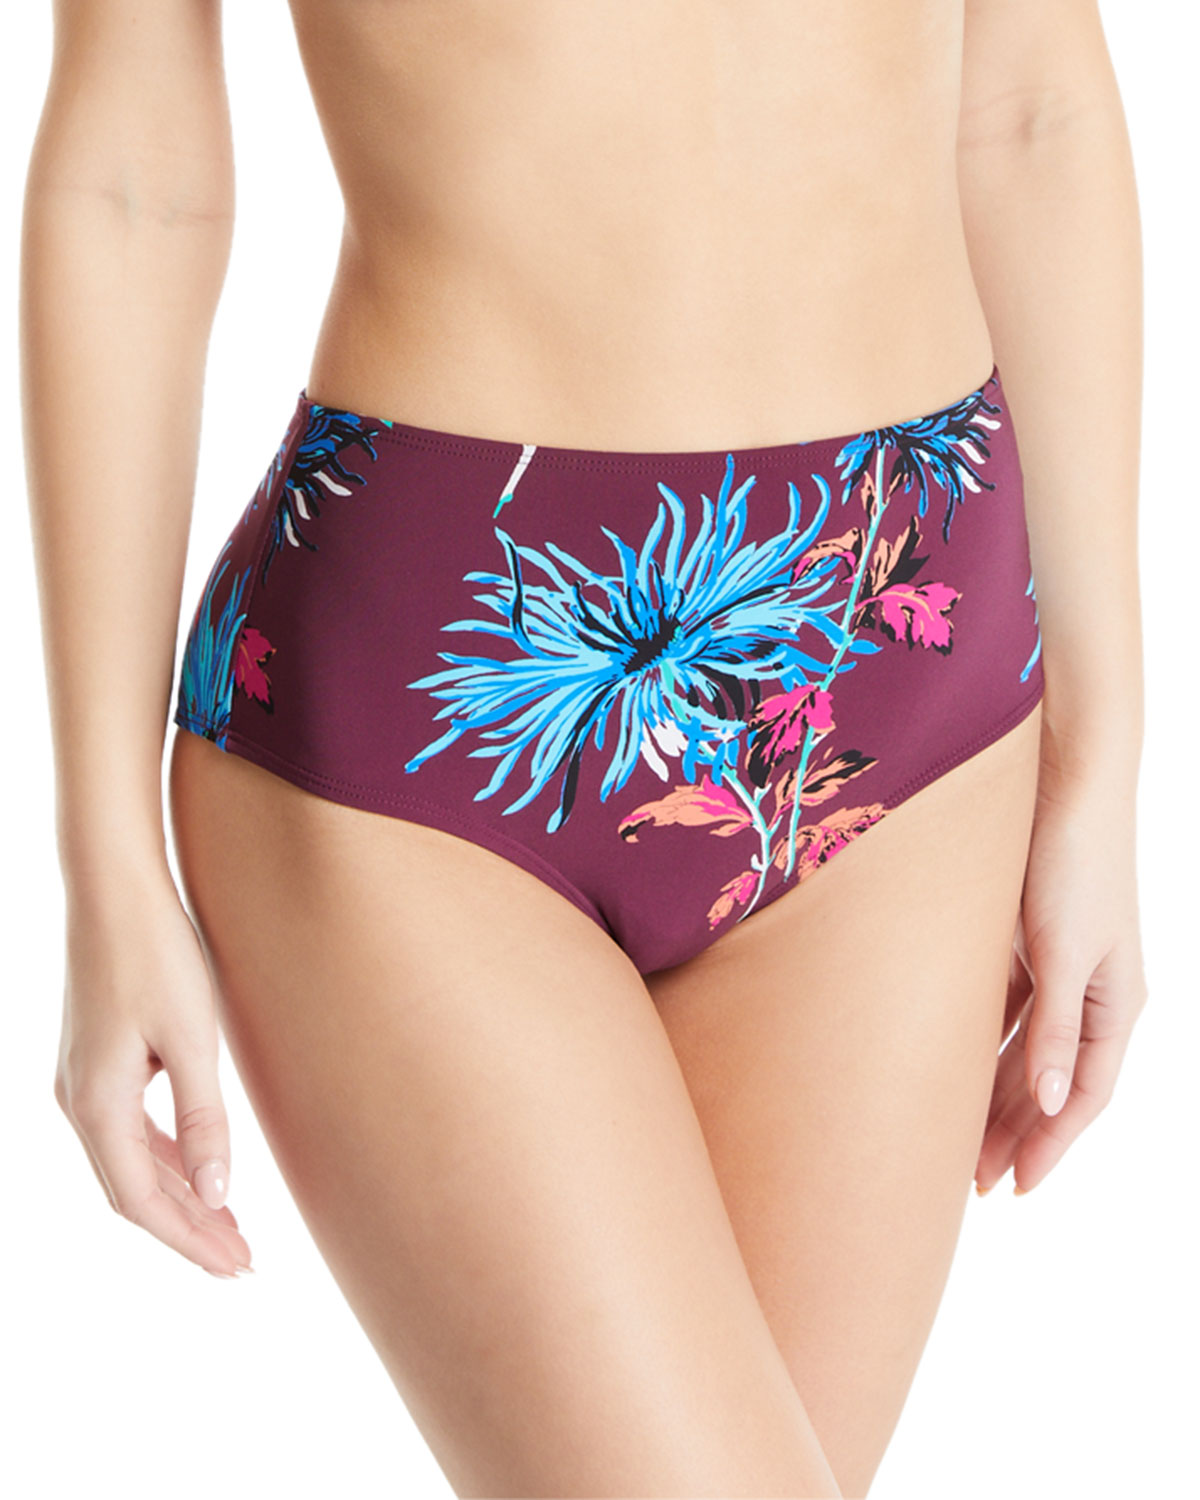 315e83ad762e8 Diane von Furstenberg New Cheeky High-Waisted Floral Swim Bottoms ...